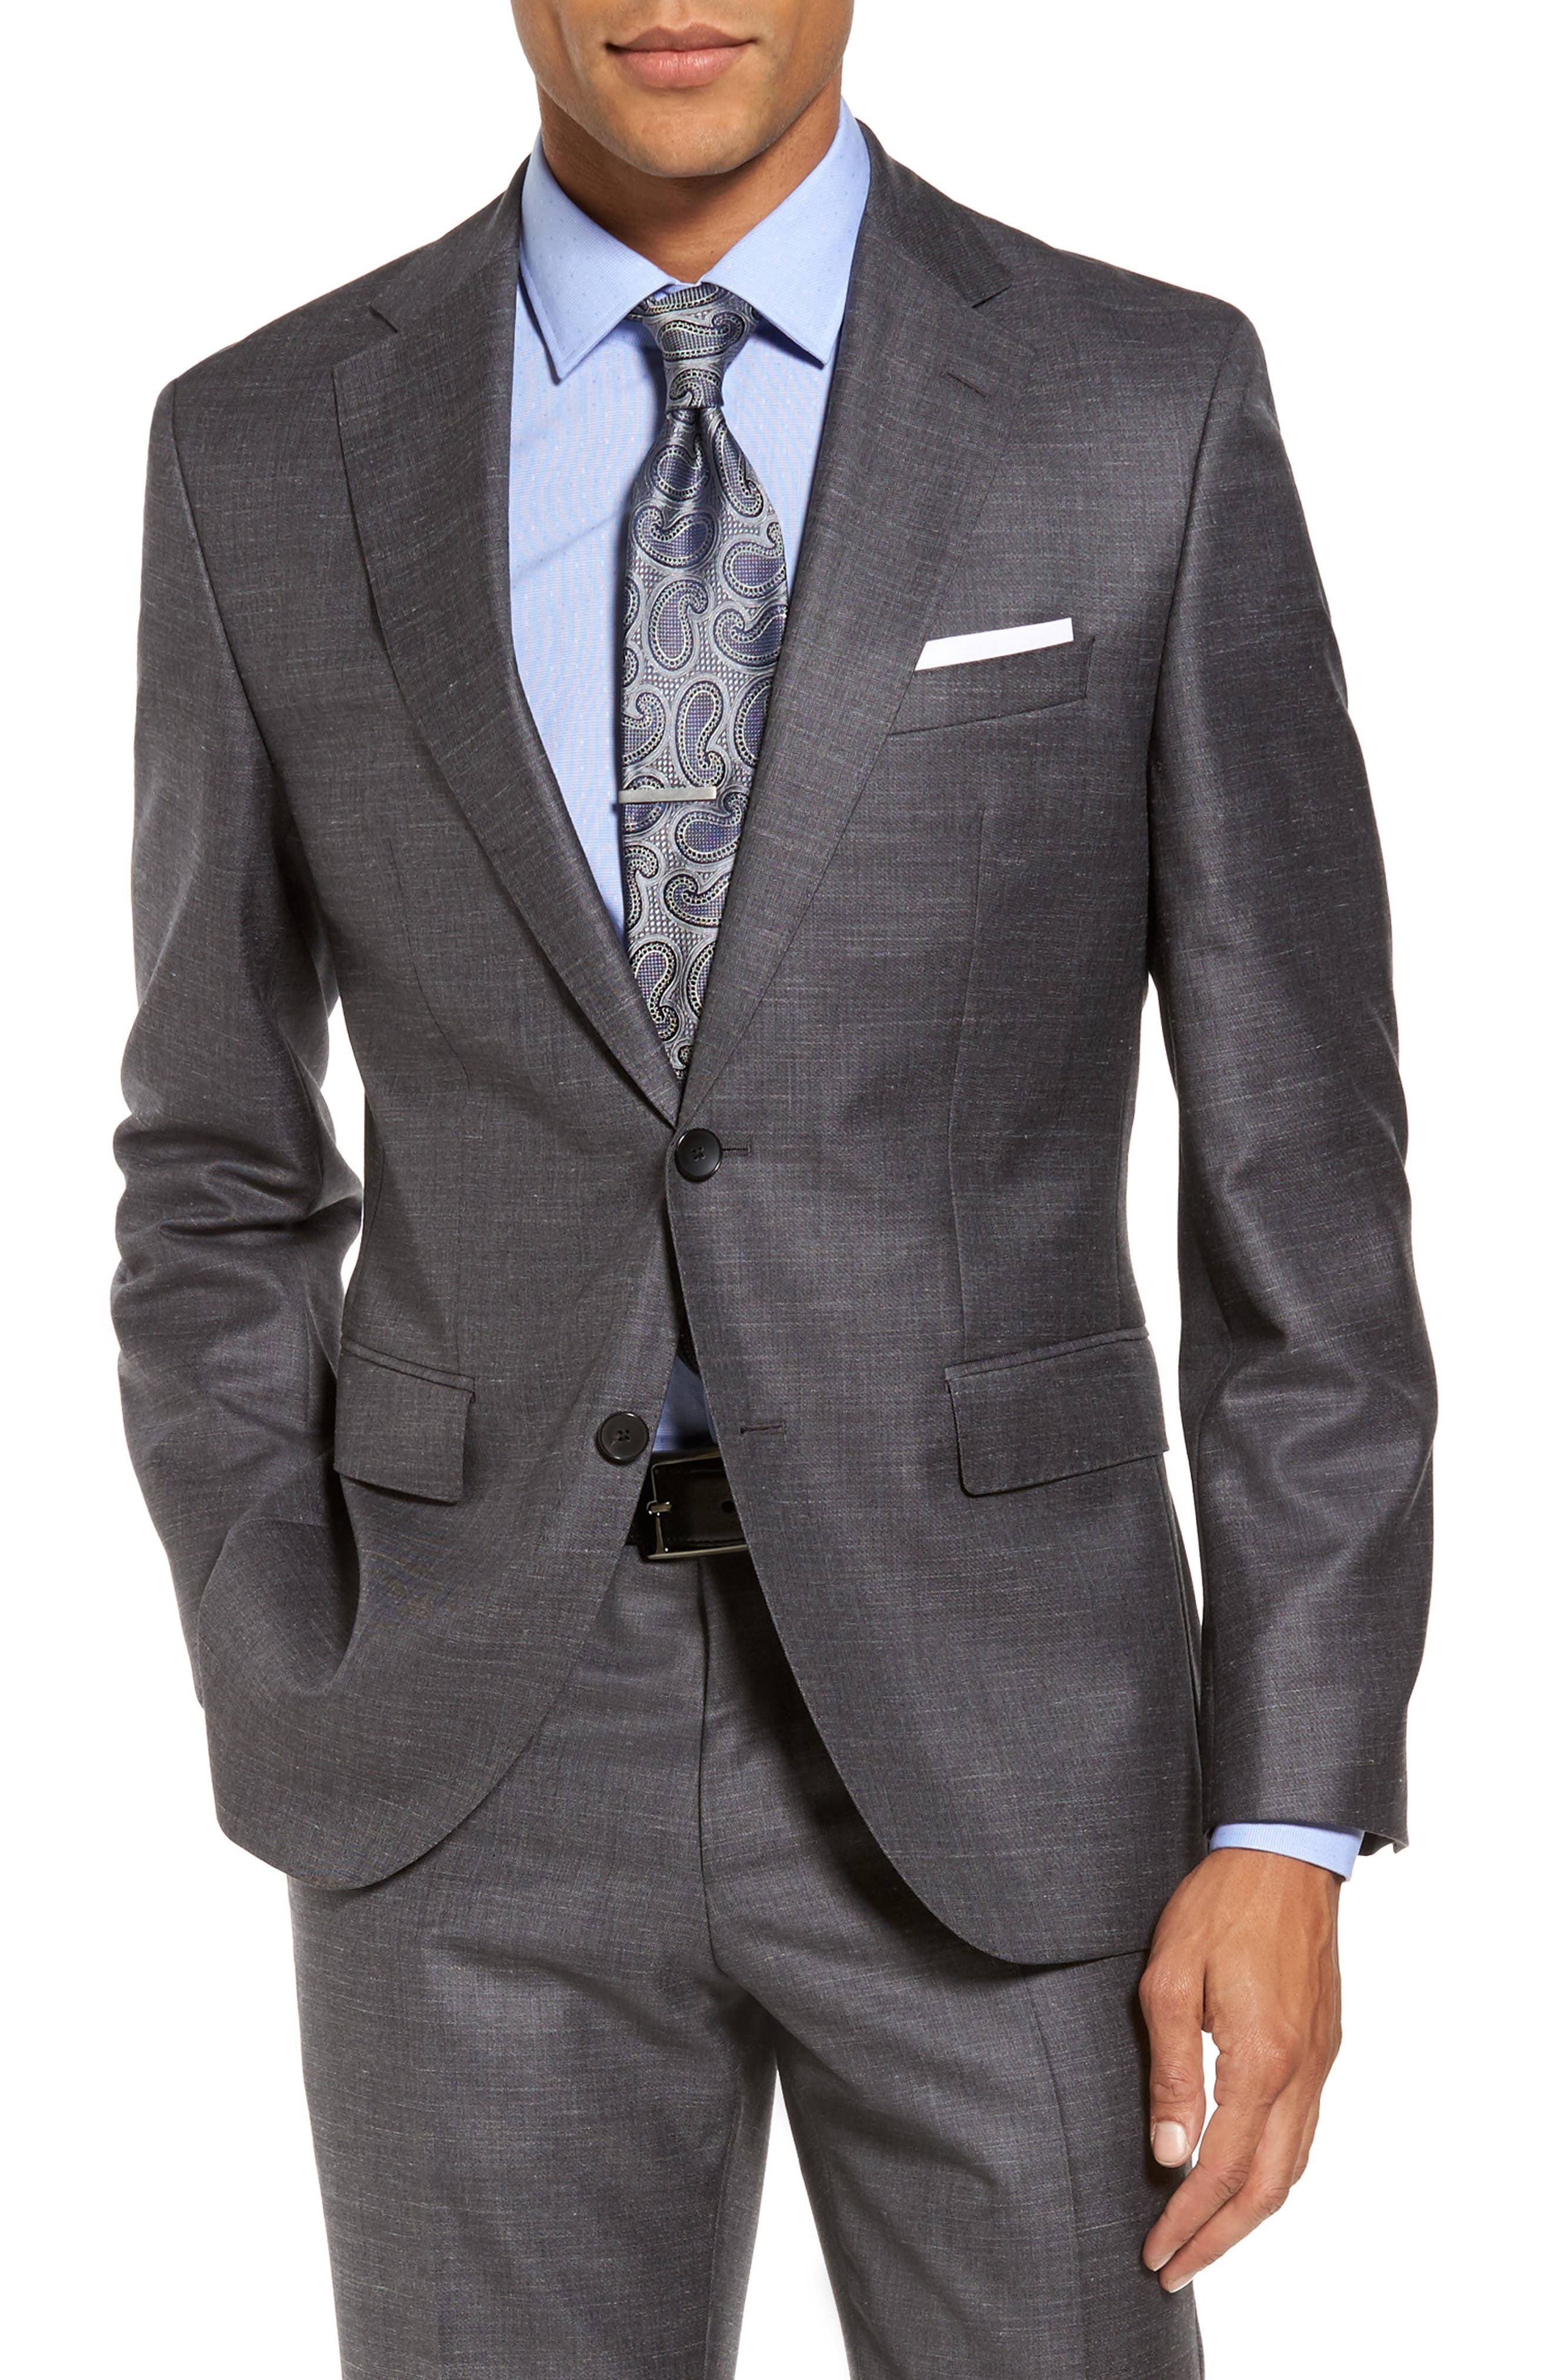 Johnstons/Lenon Classic Fit Solid Wool Blend Suit,                             Alternate thumbnail 5, color,                             Open Grey